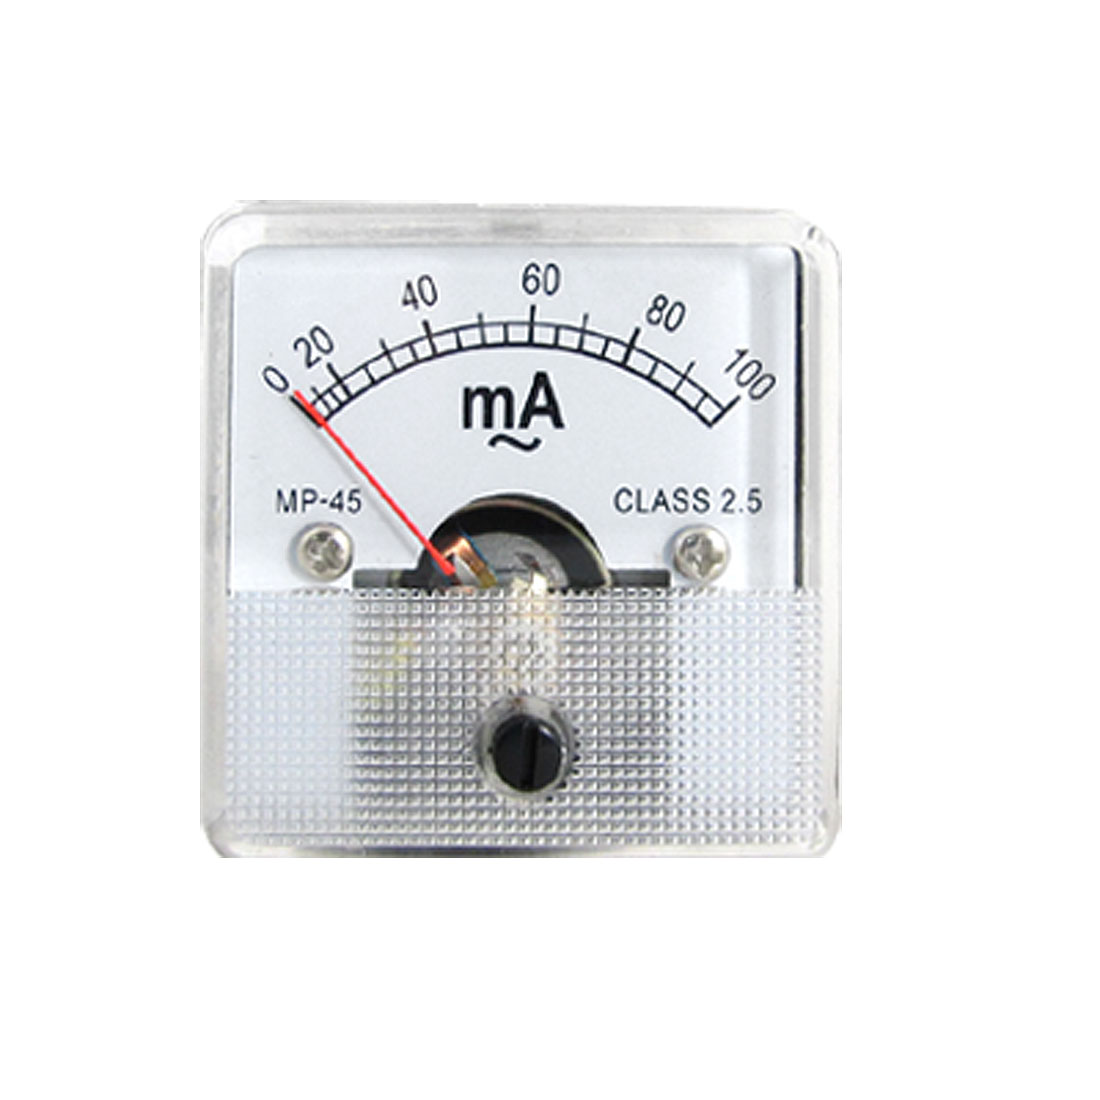 MP-45 AC 0-100mA Current Amperemeter Analog Panel Meter